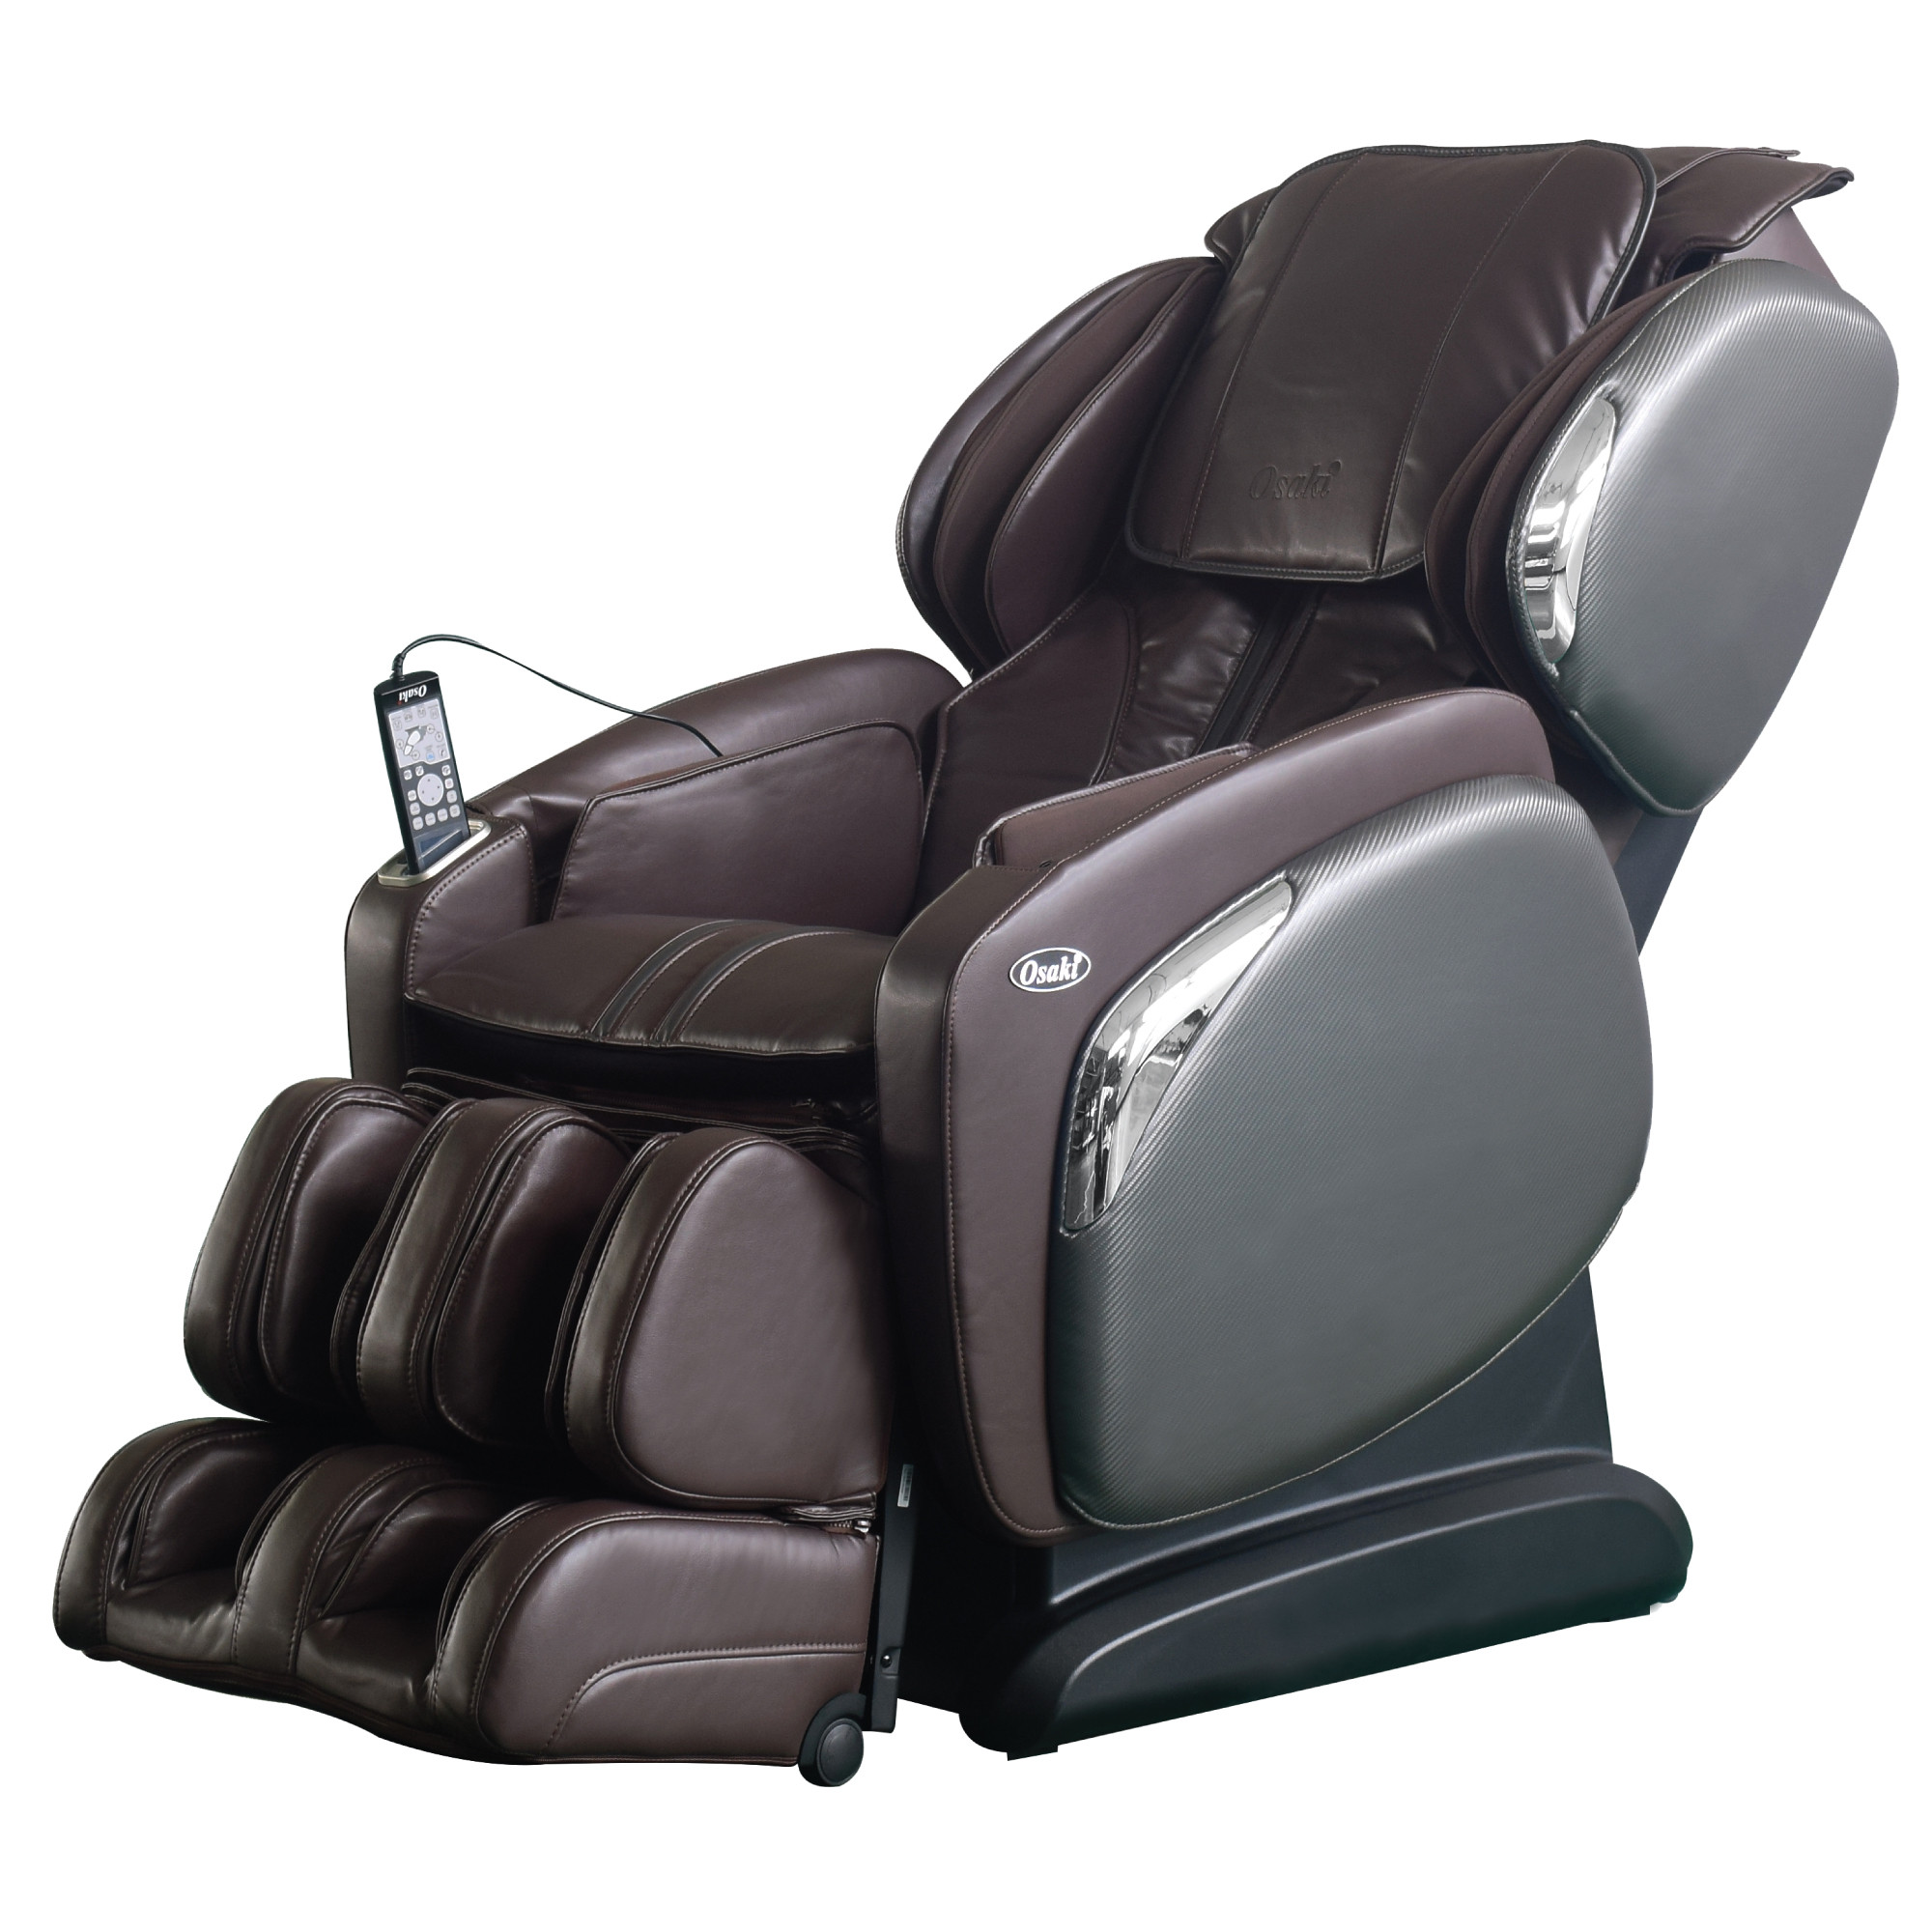 Osaki 4000LS Massage Chair - Brown  - Front Angle View